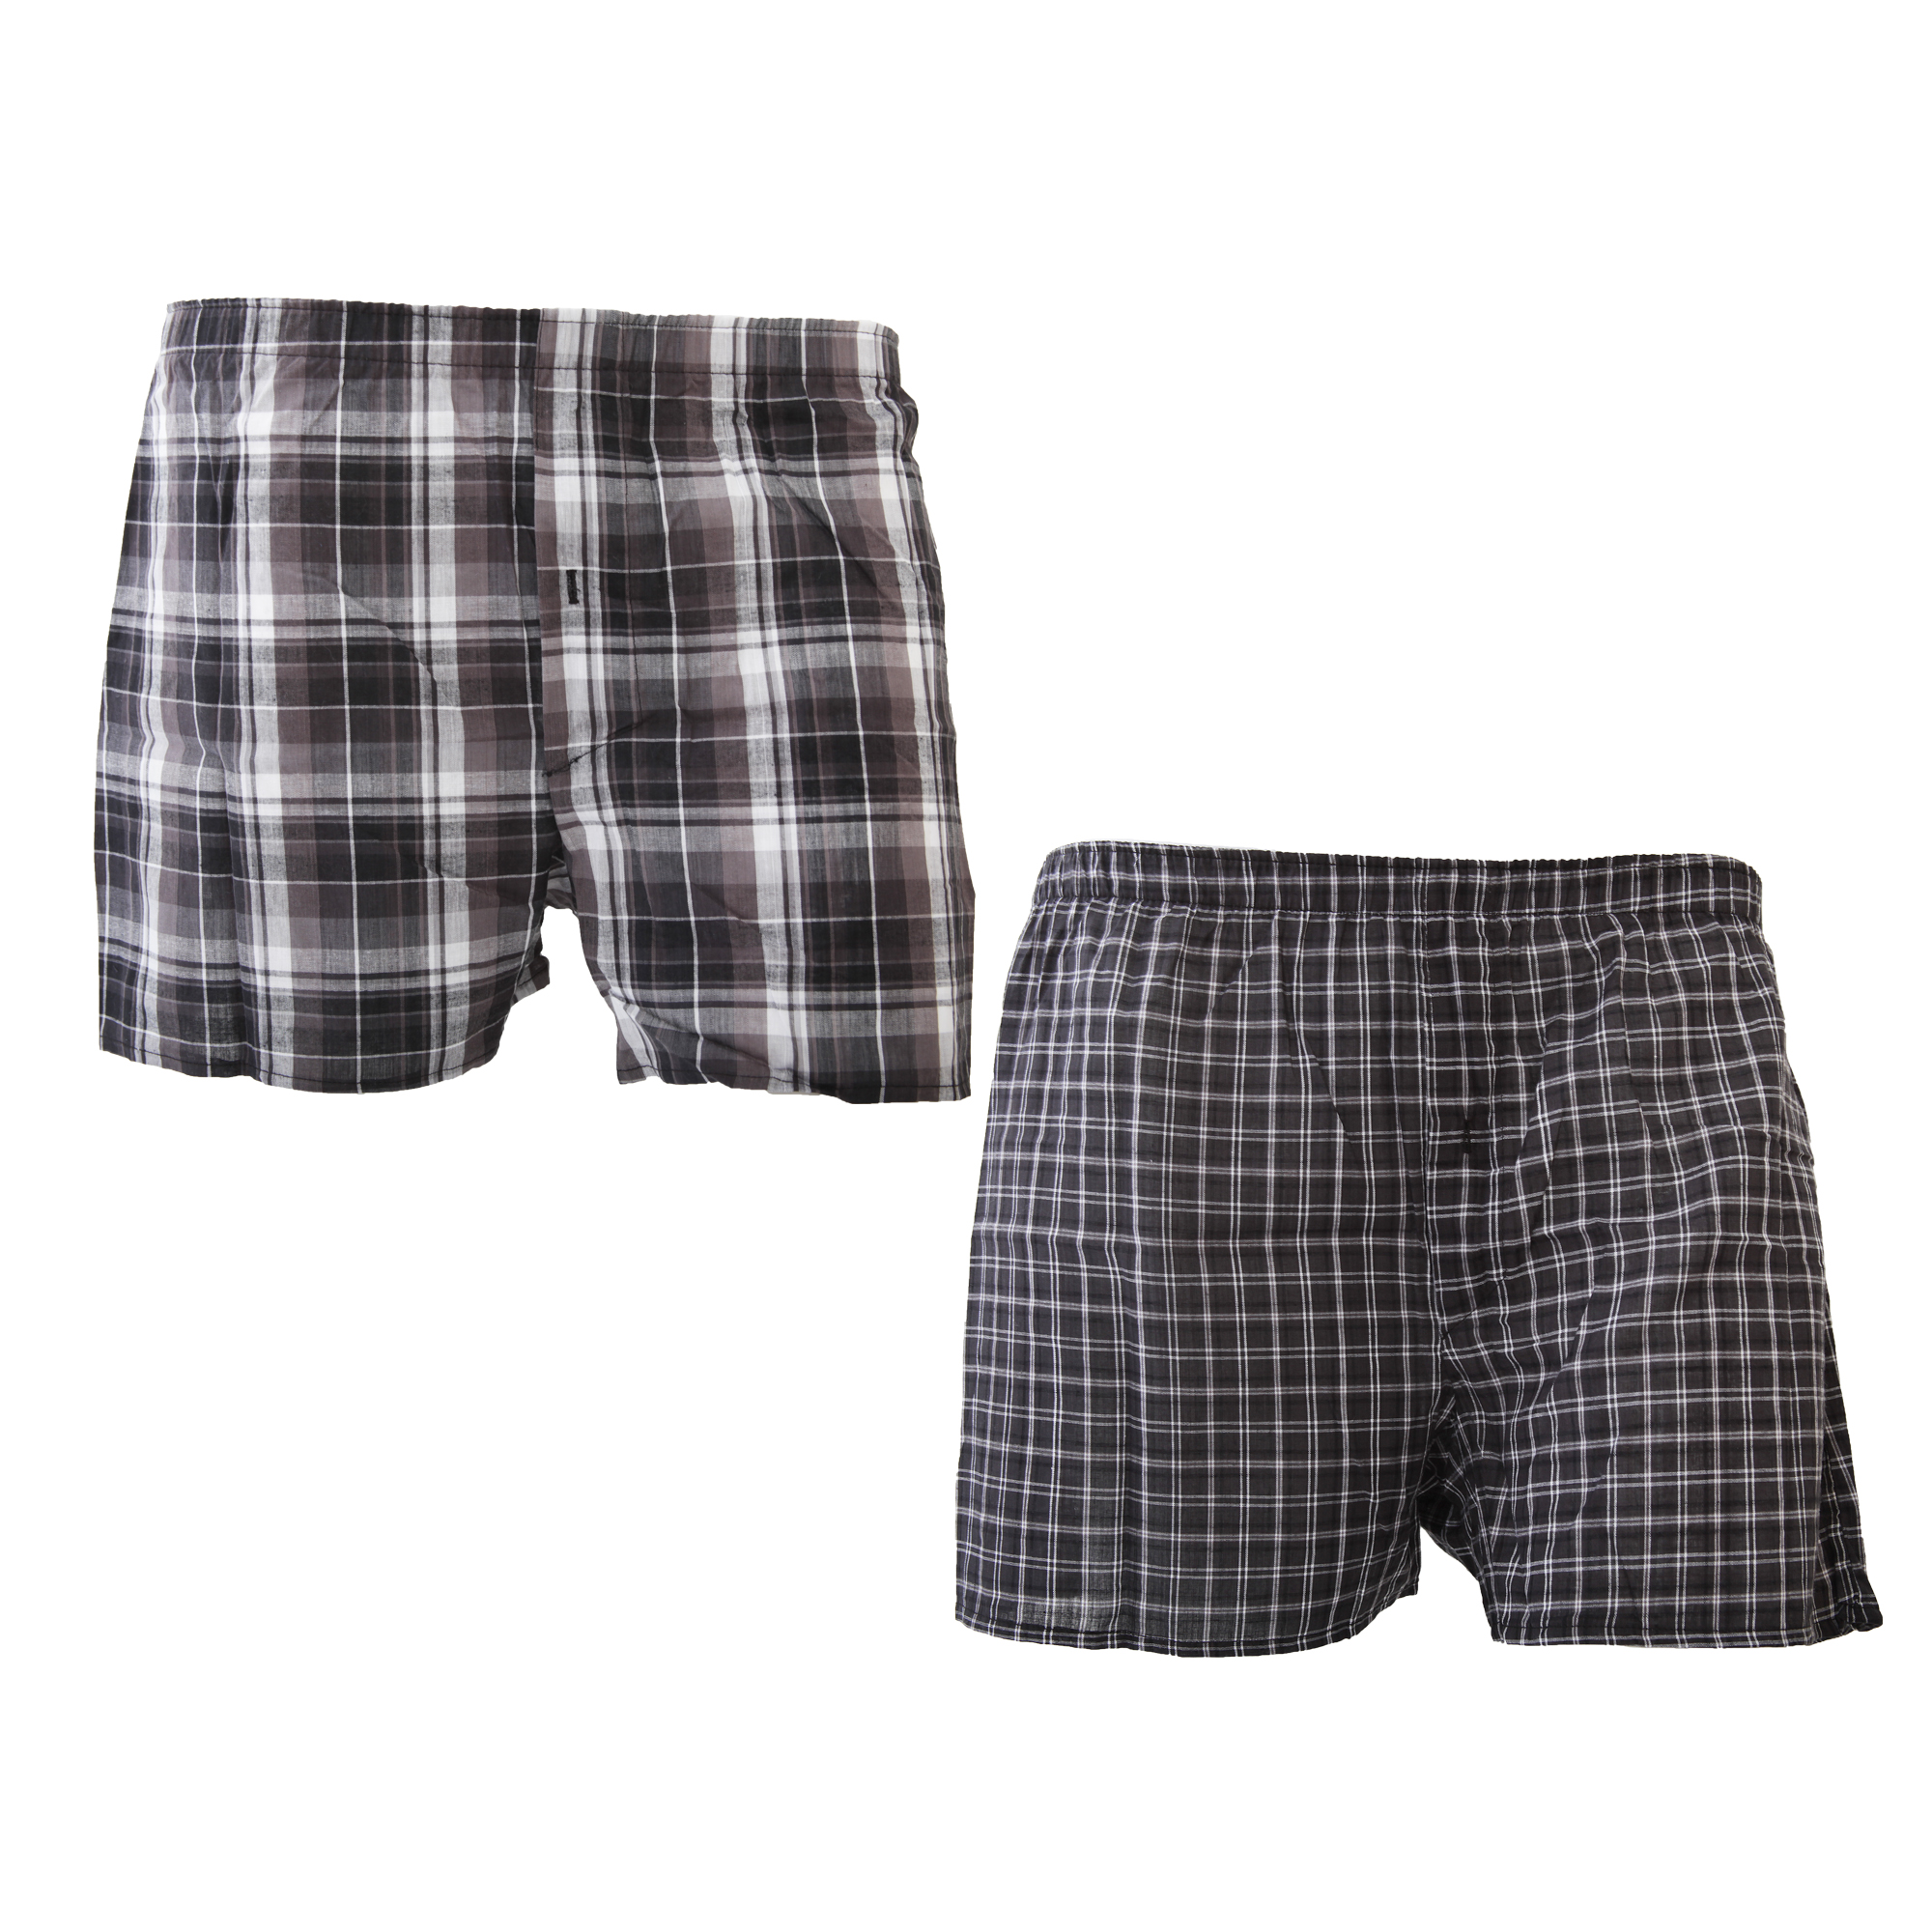 mens 100 cotton woven boxer shorts boxers underwear pack of 2 sizes s xl ebay. Black Bedroom Furniture Sets. Home Design Ideas